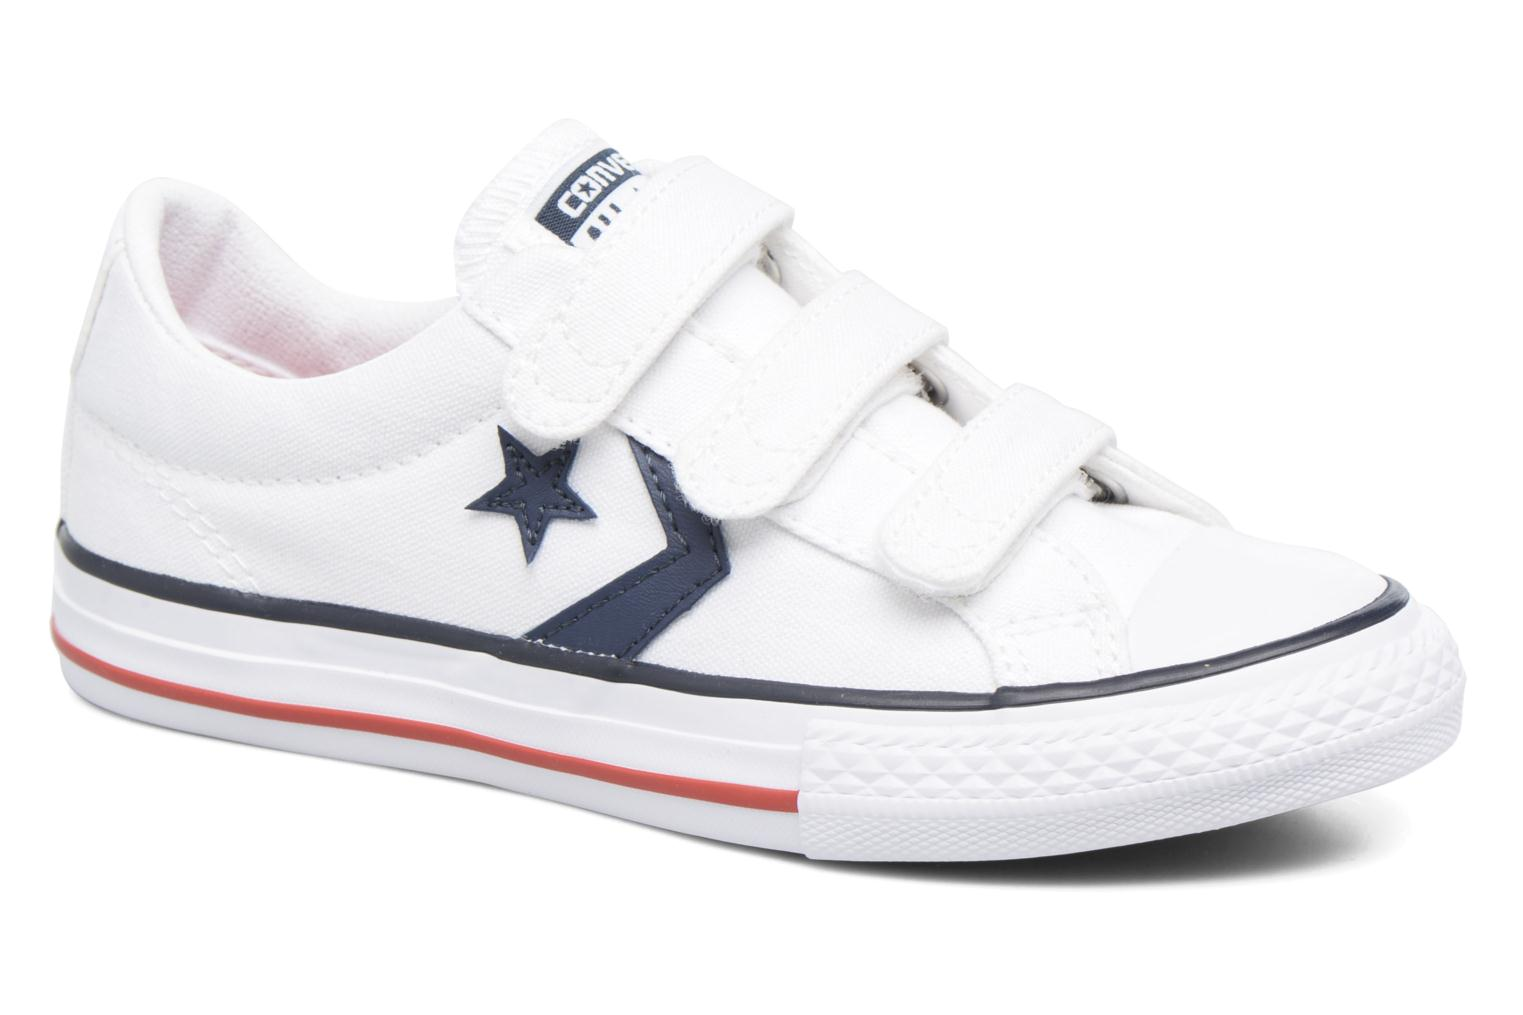 converse all star player 3v ox